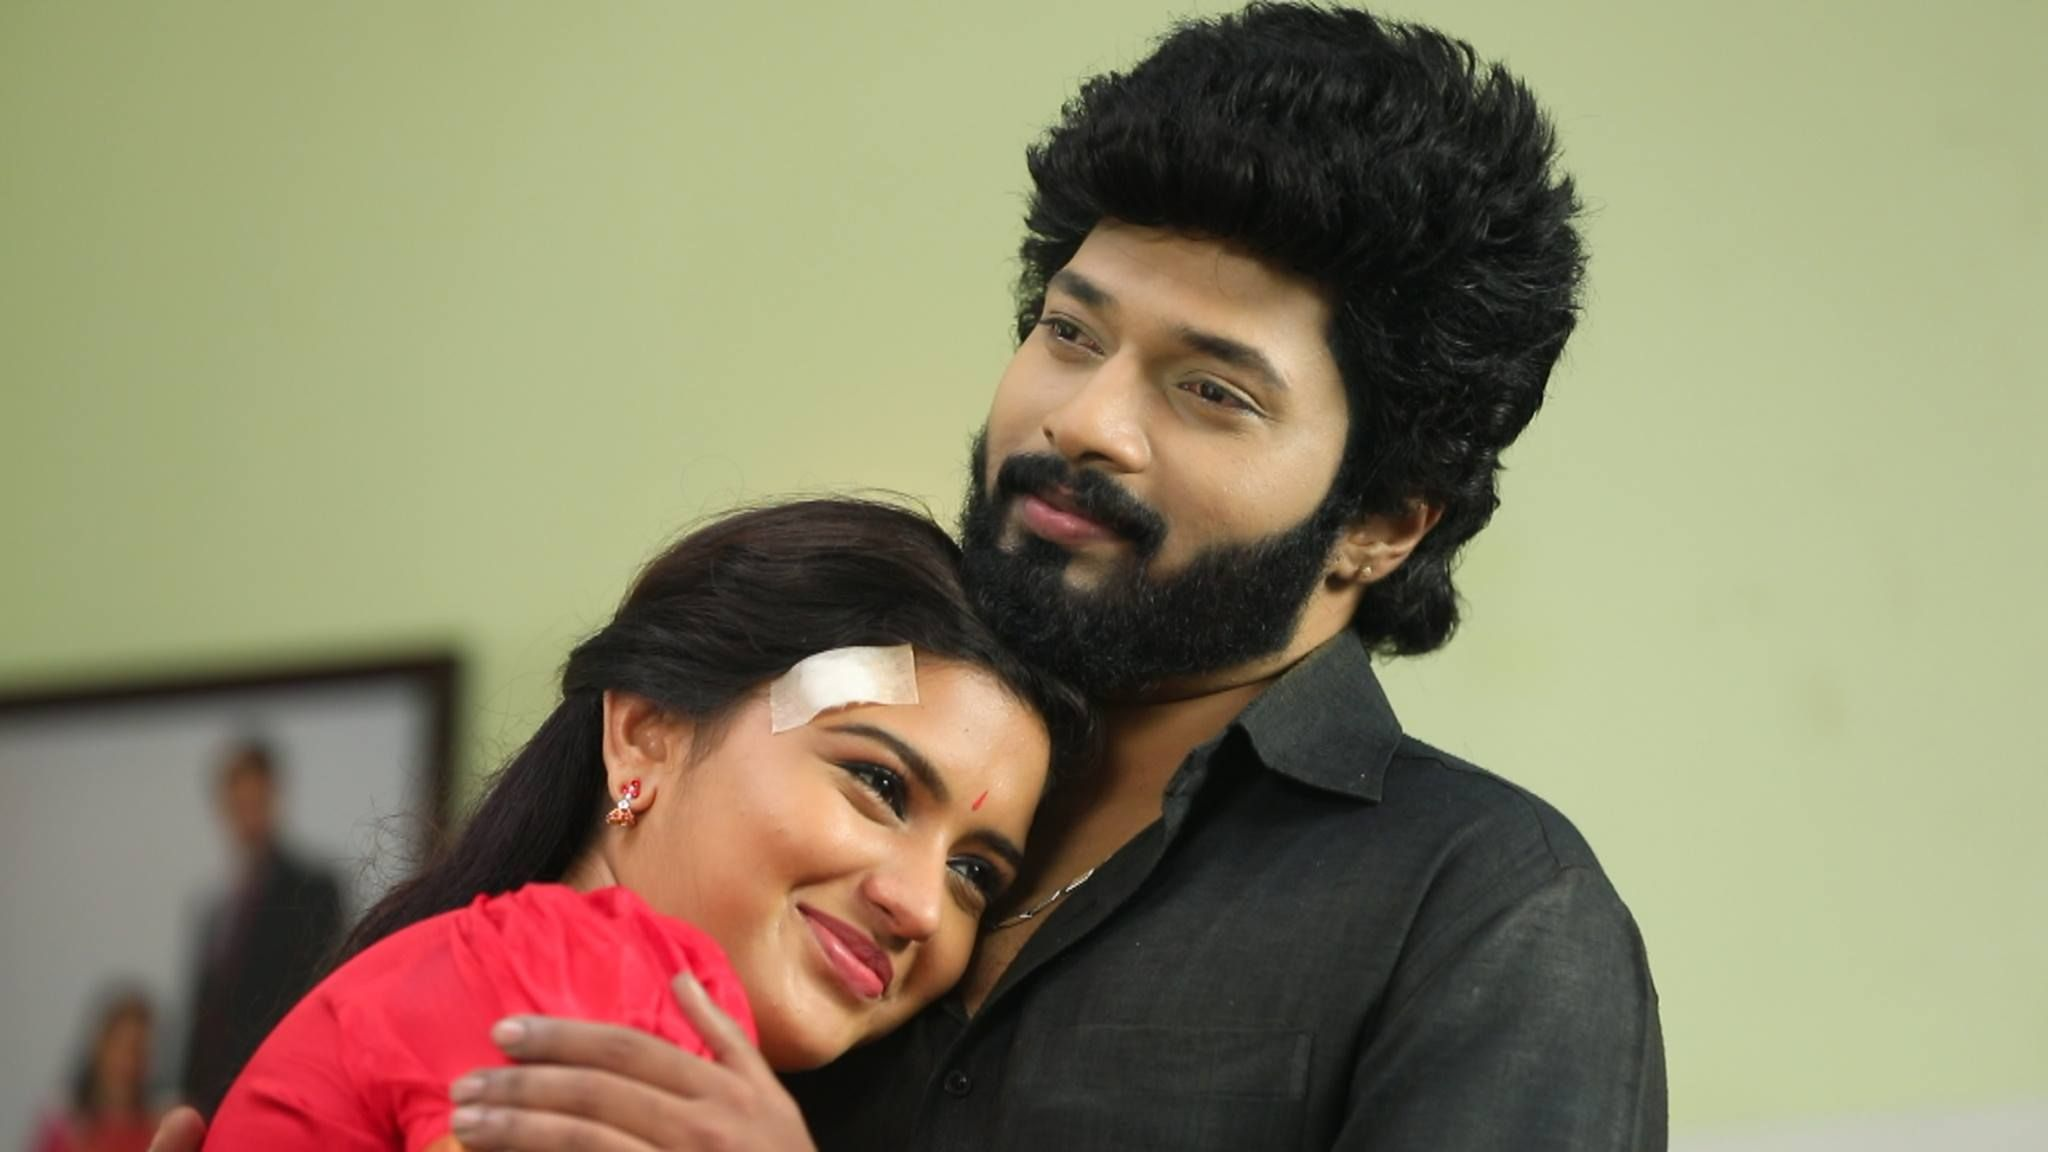 Sembaruthi Serial Parvathi Sembaruthi Serial Cast Sembaruthi Serial Rating And Latest Episode Etc Today Episode Intense Love Film Producer